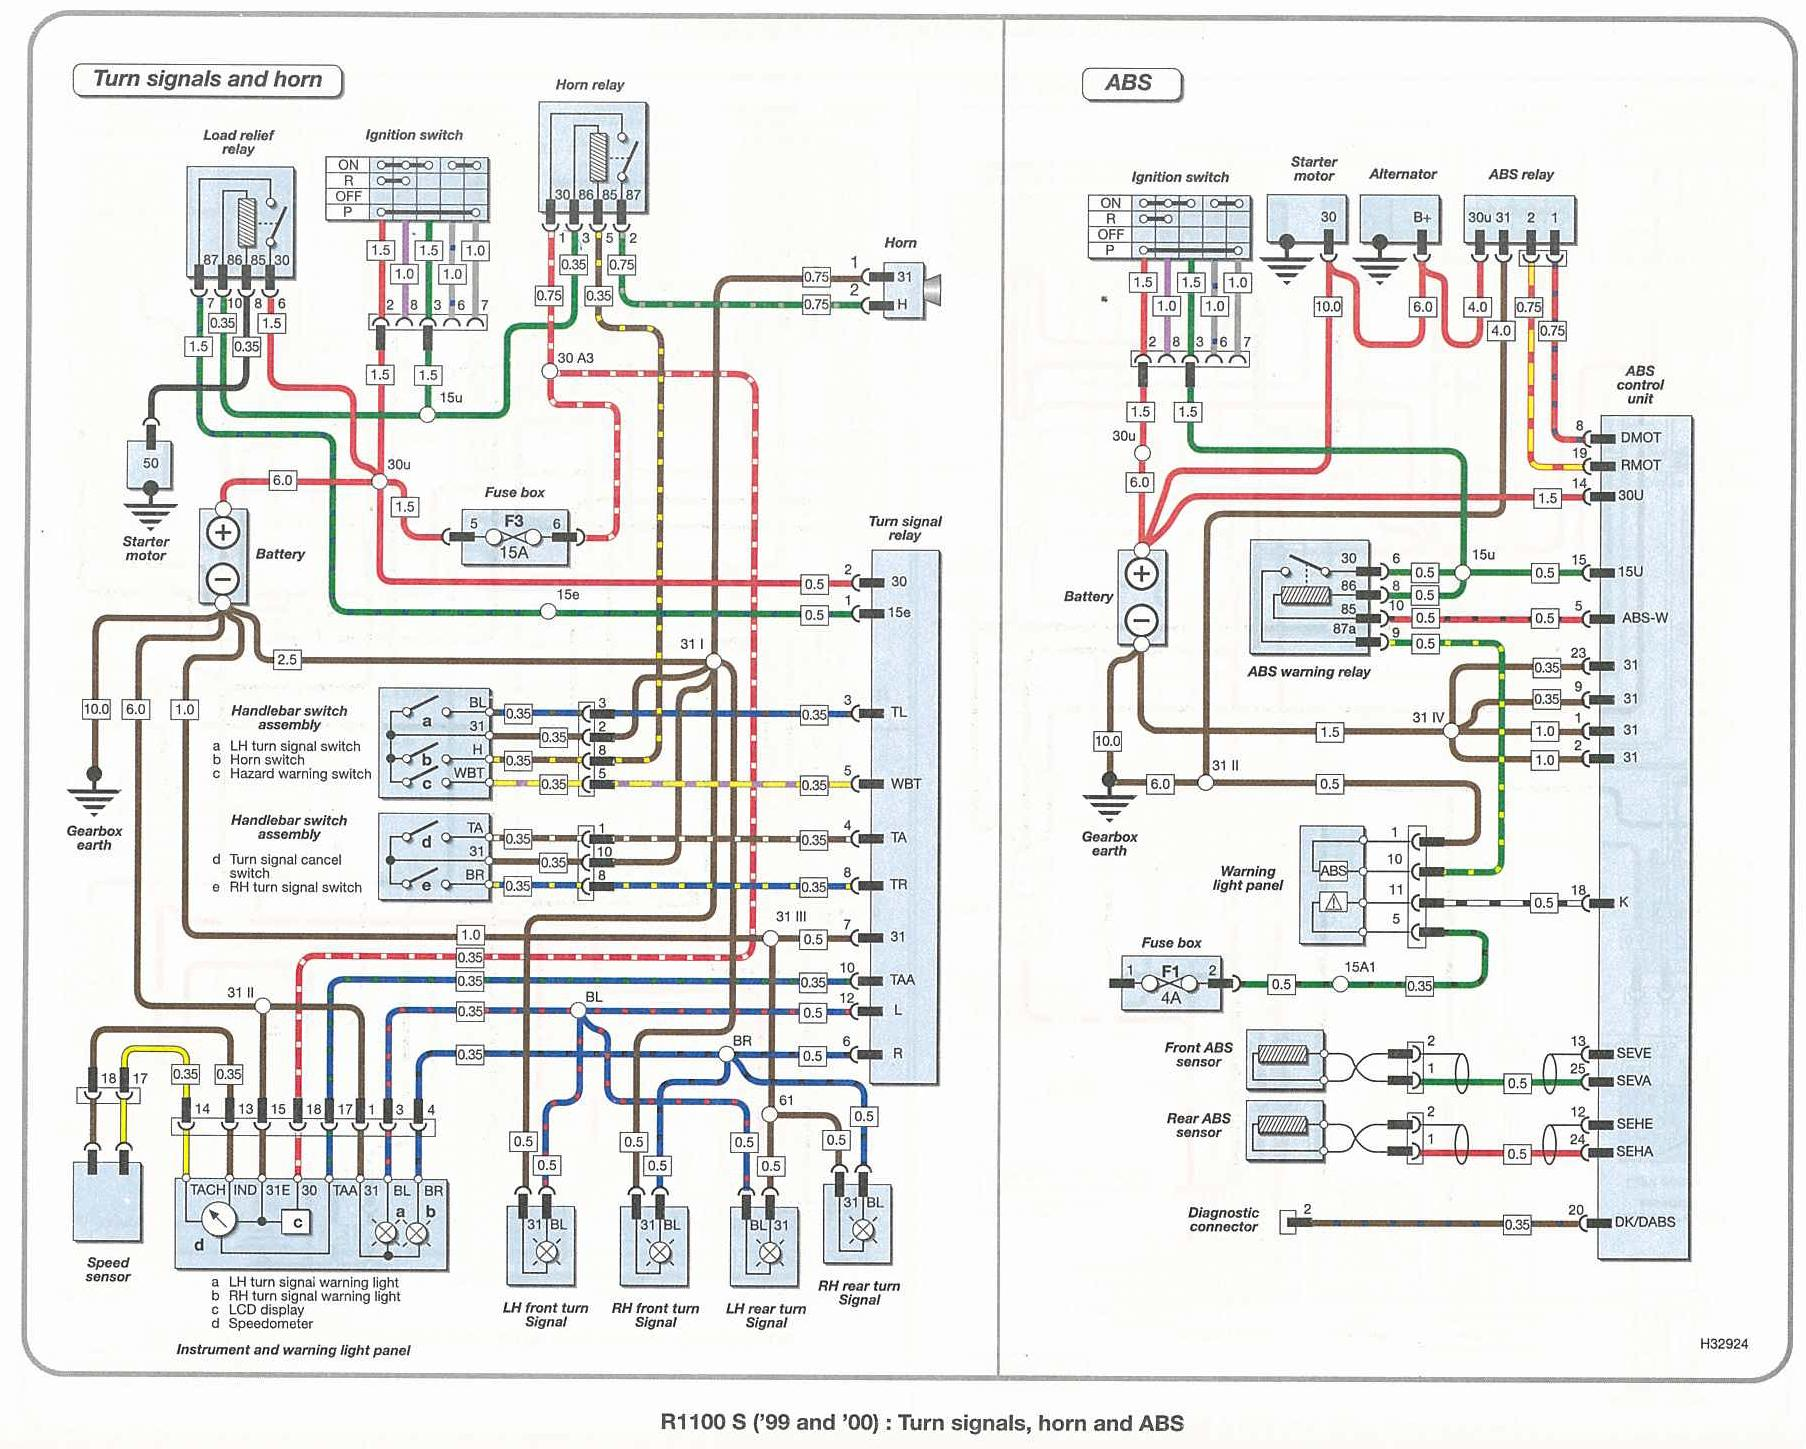 wiring03 bmw wiring diagram bmw wiring diagrams e39 \u2022 wiring diagrams j E46 Wiring Diagram PDF at cos-gaming.co